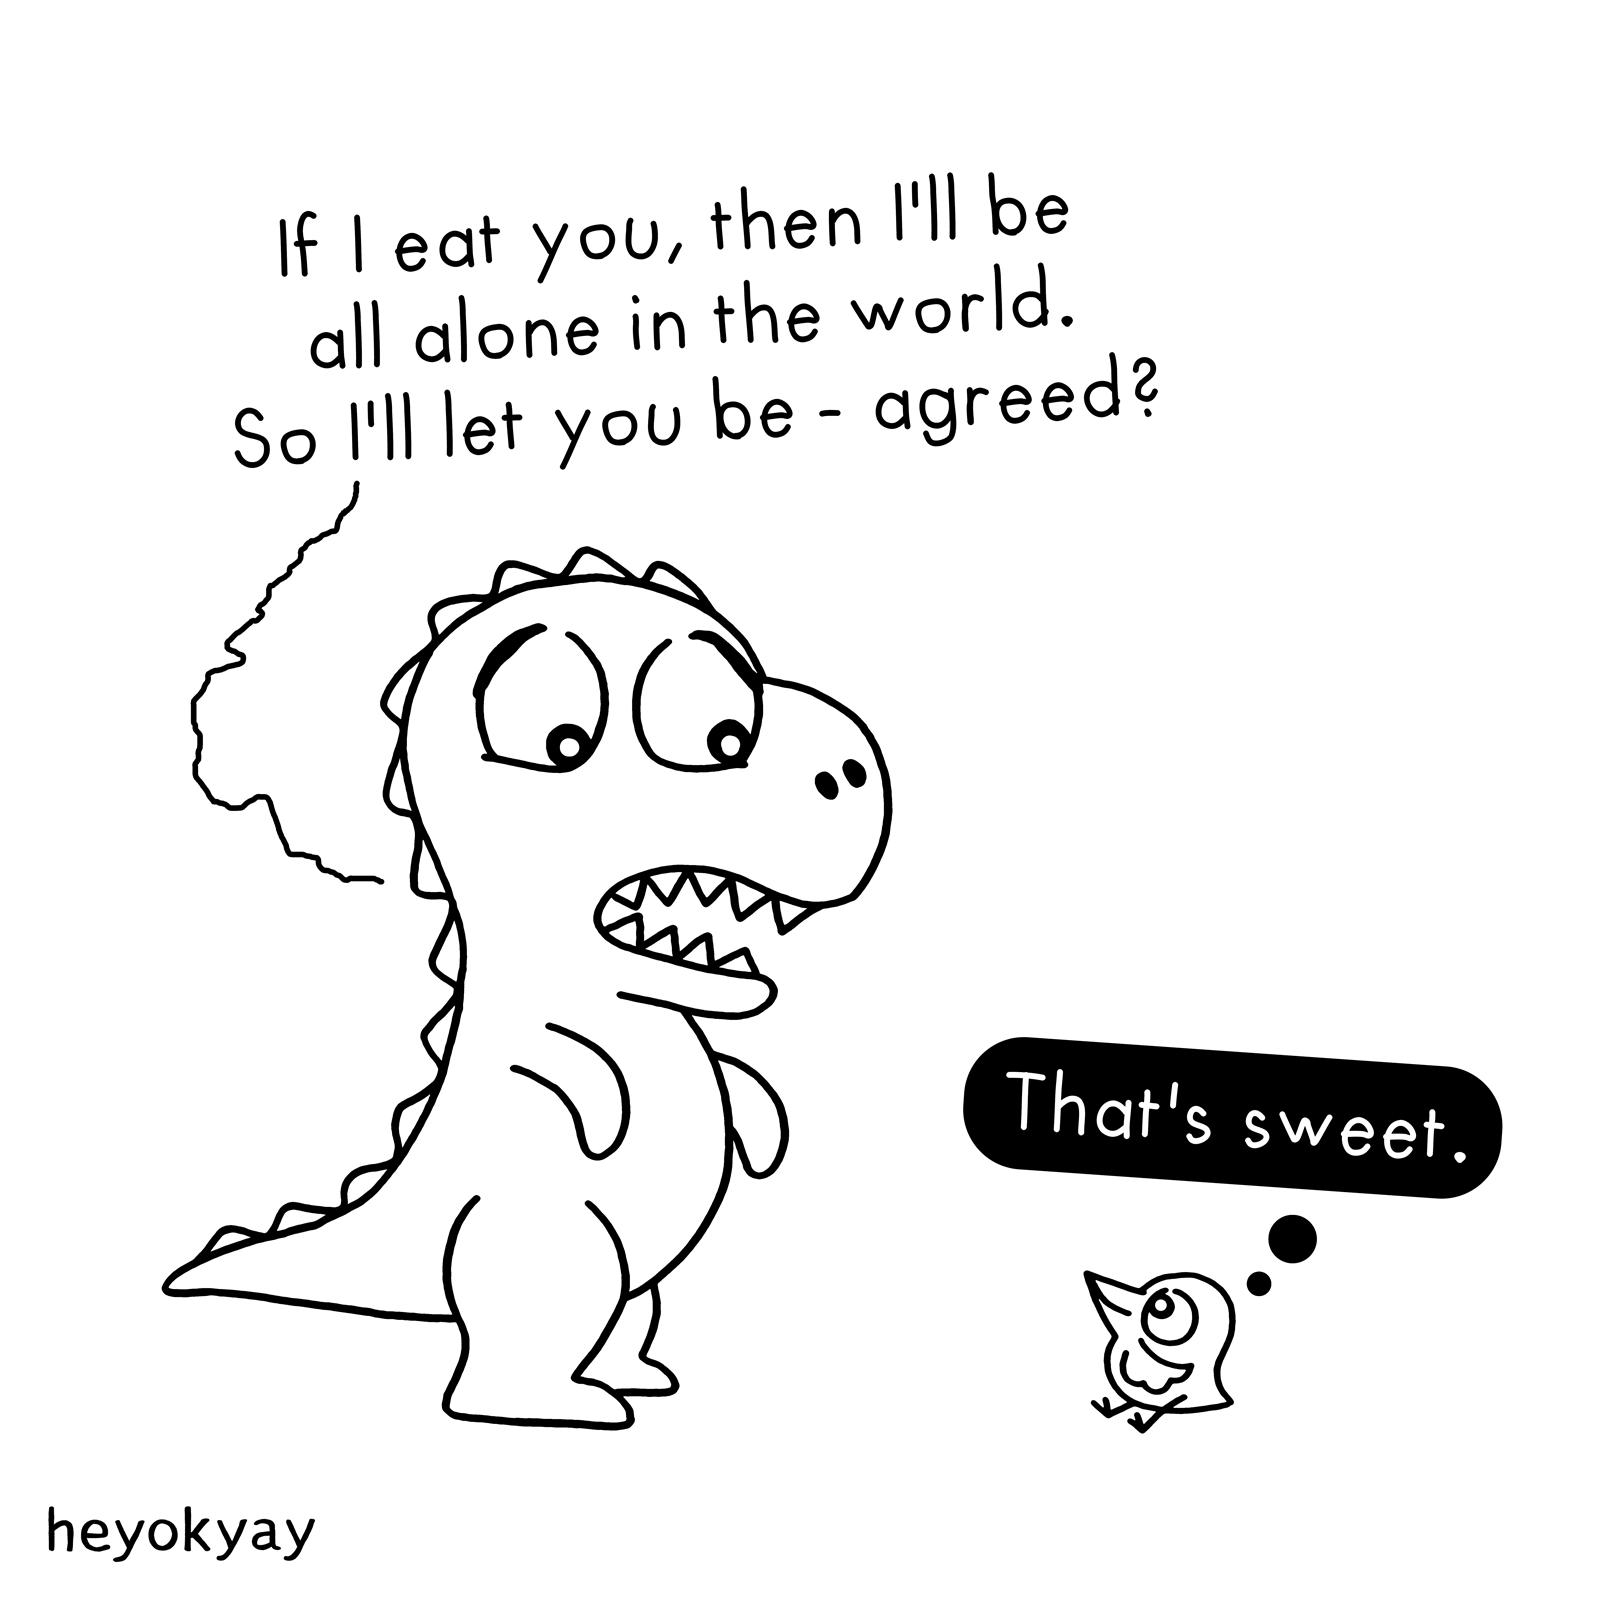 All Alone heyokyay comic